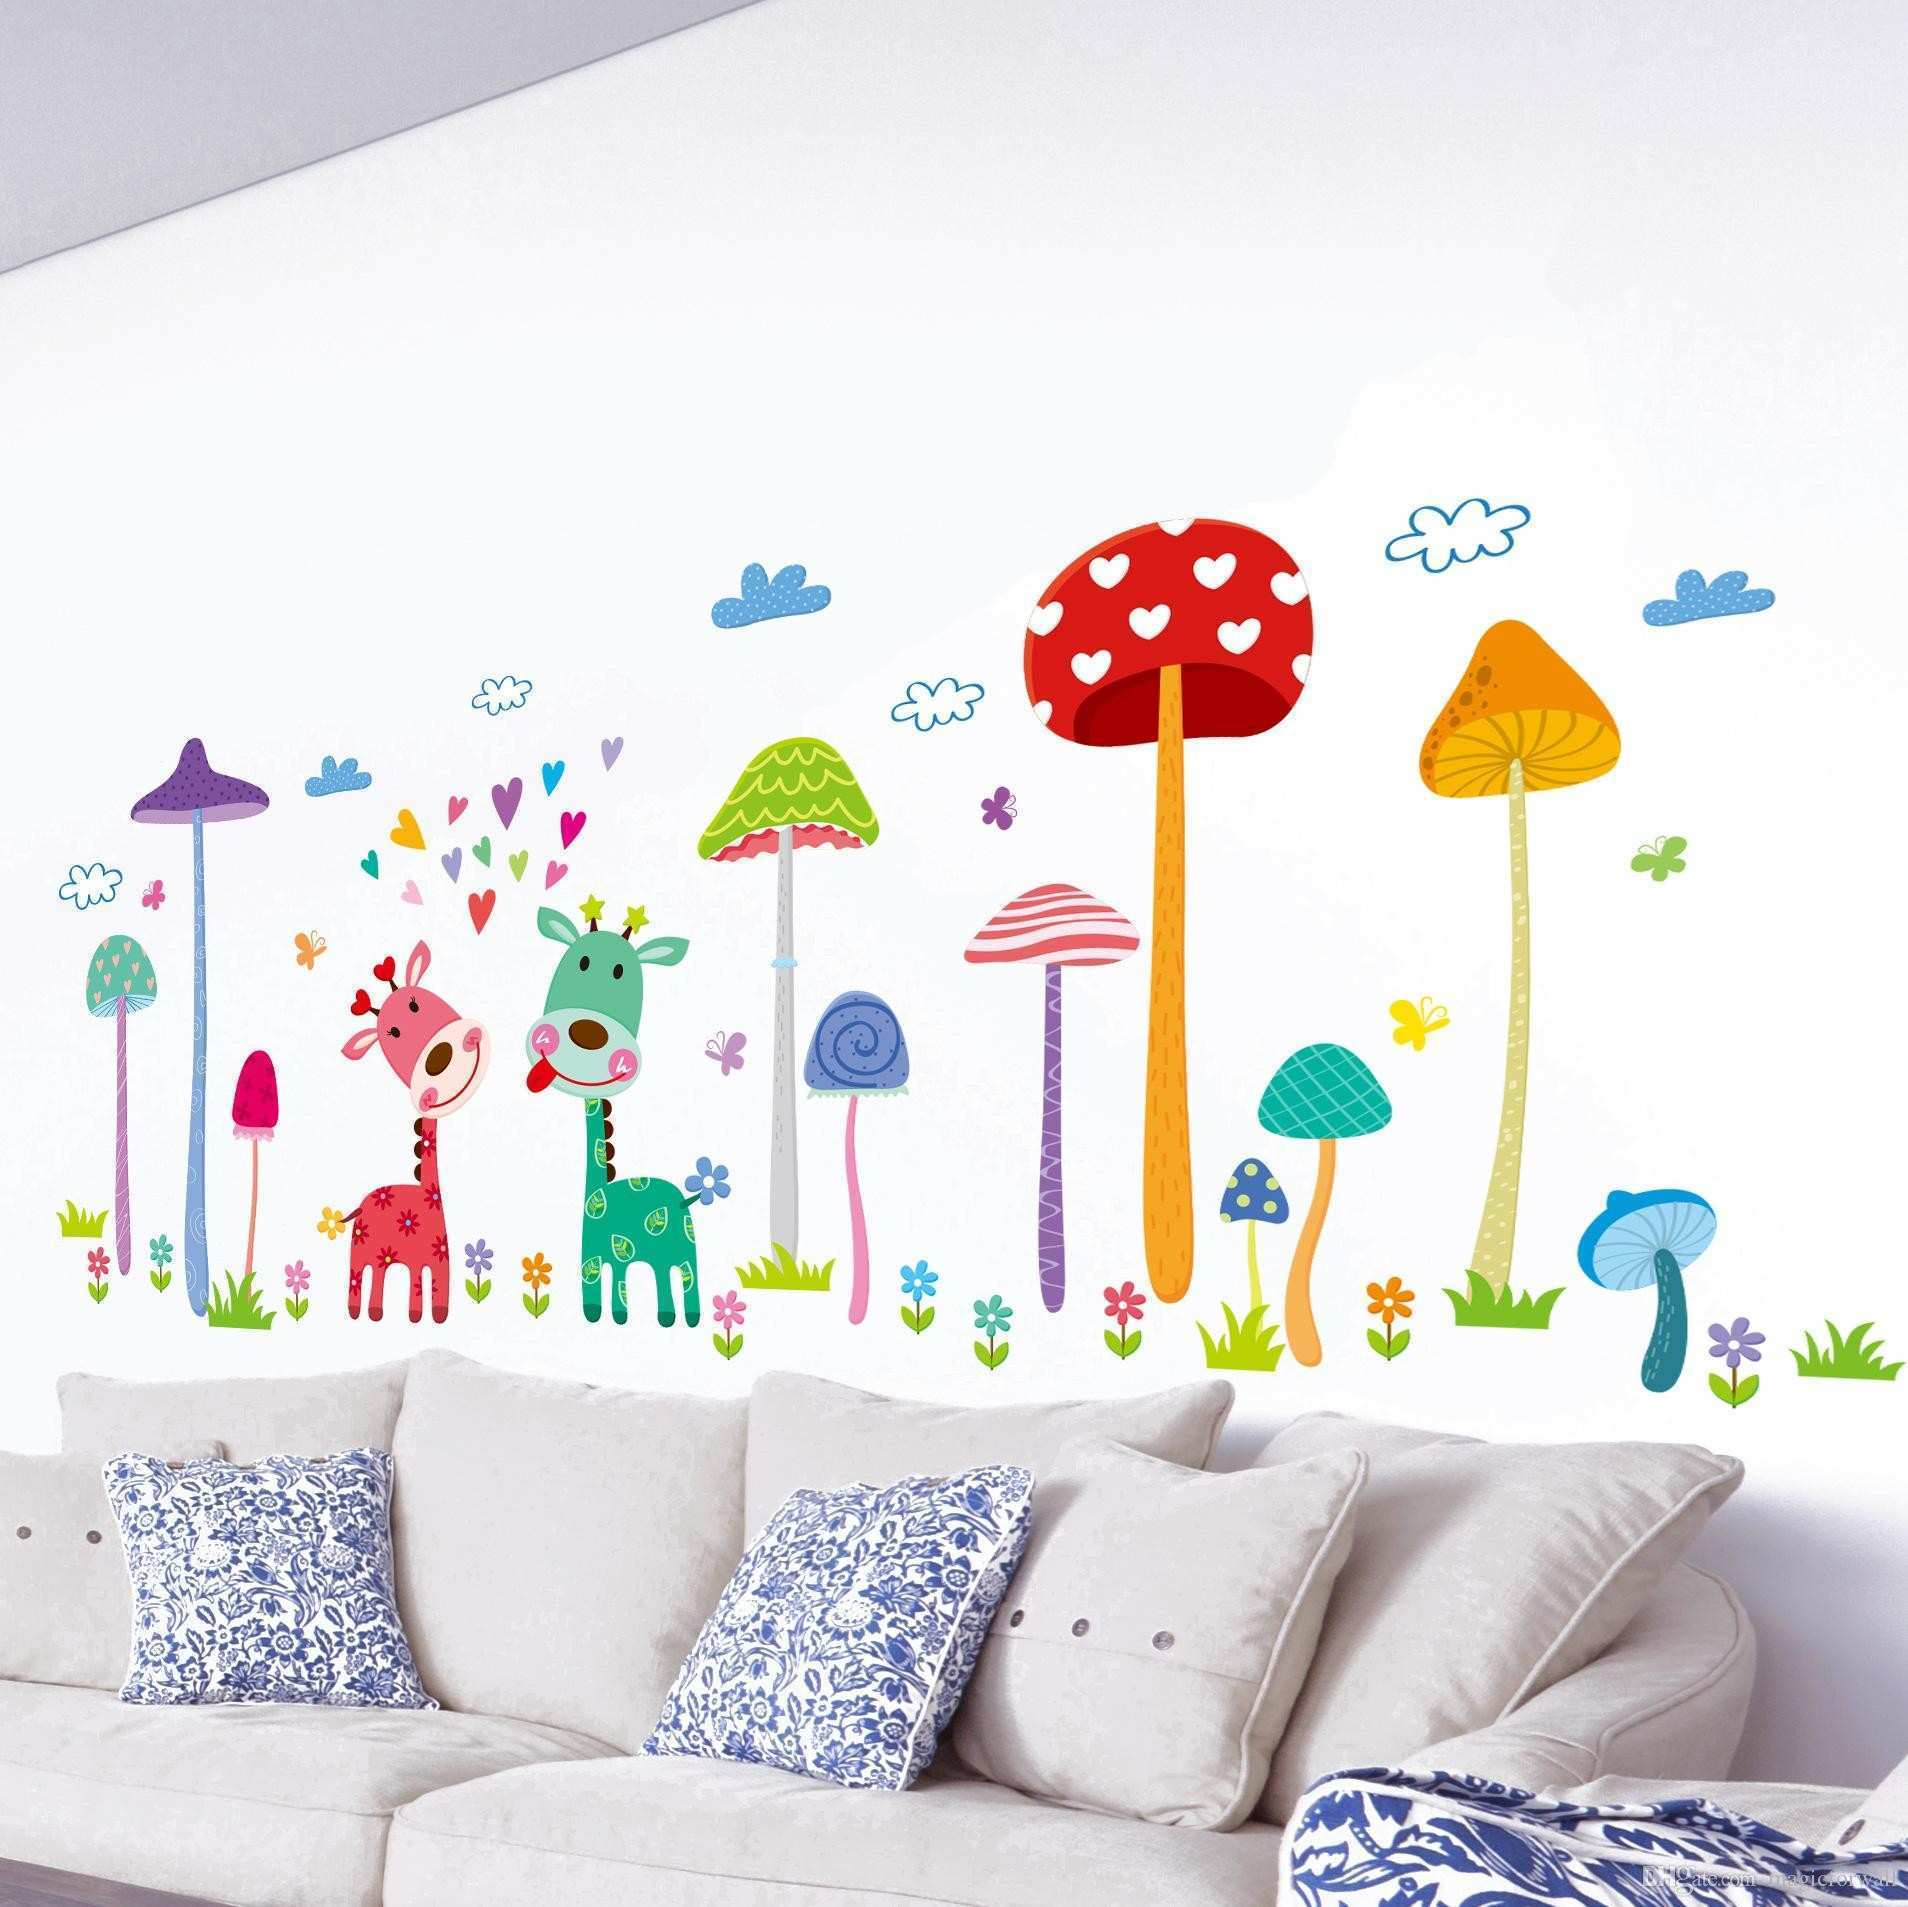 Kids Room Wall Decals For Kids Baby Room Wall Stickers Nursery